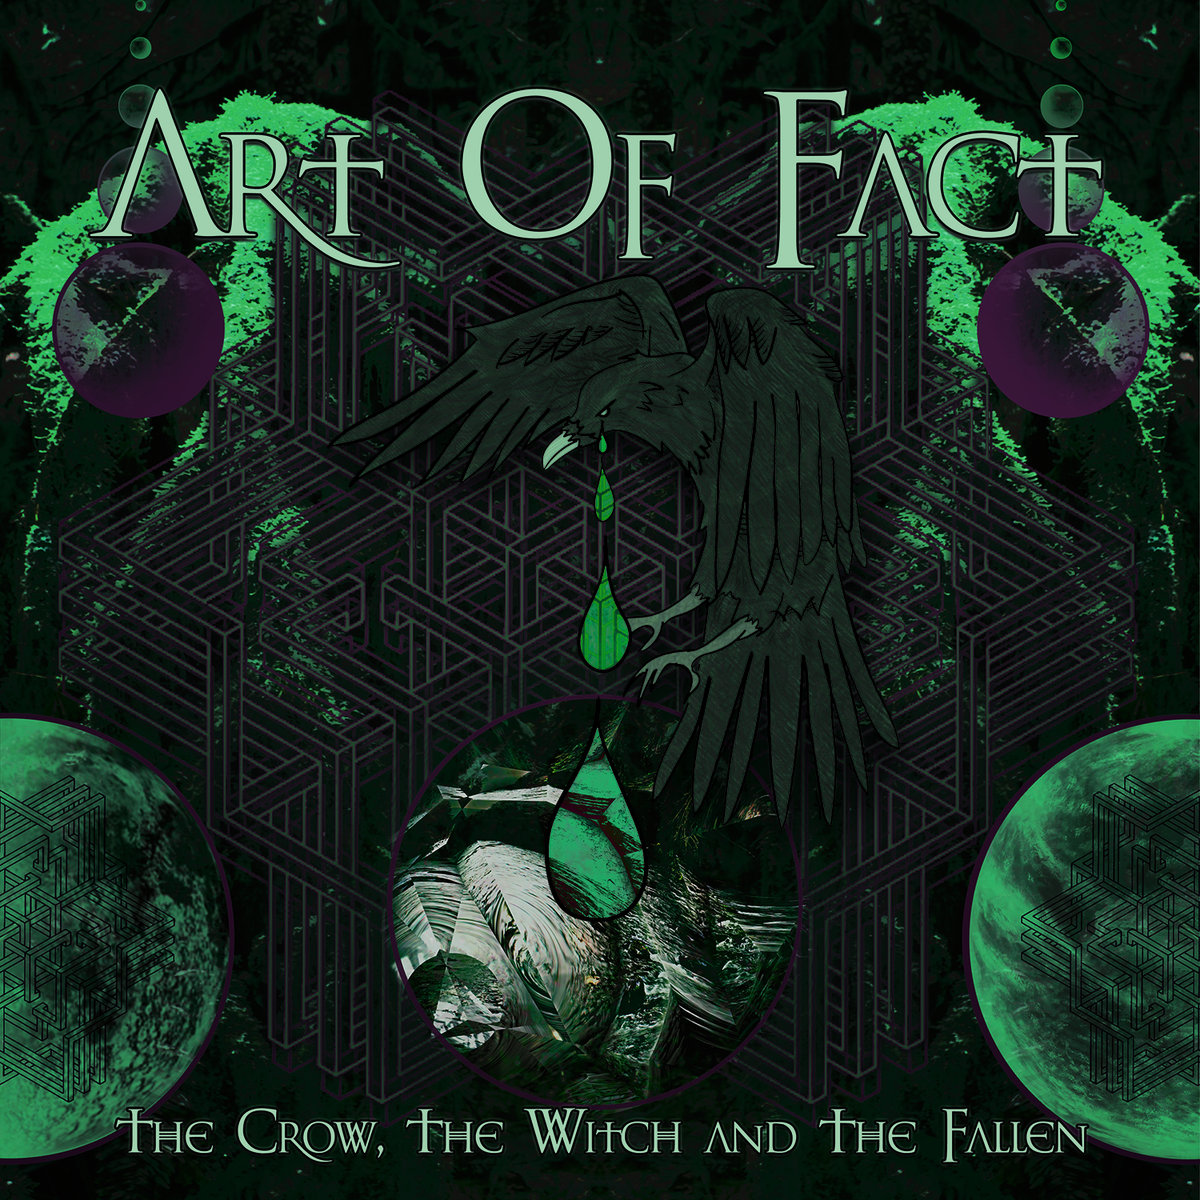 Art Of Fact - The Witch @ 'The Crow, The Witch and The Fallen' album (bass, electronic)